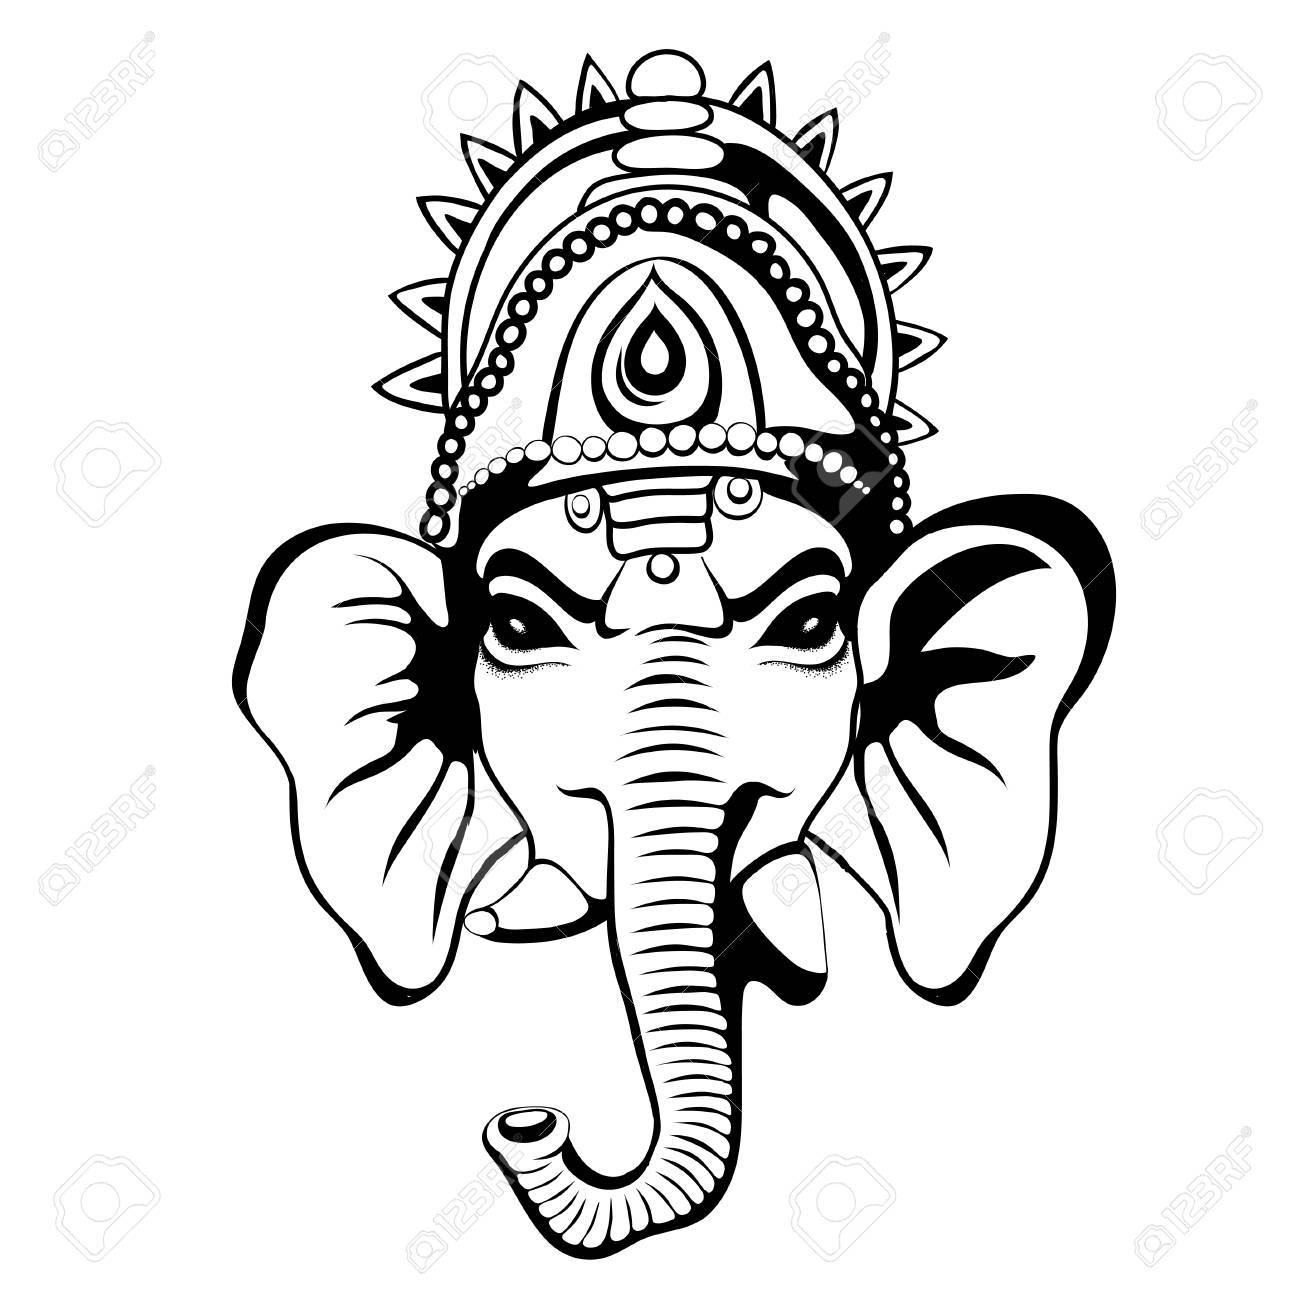 1300x1300 Lord Ganesha Portrait Sketch On A Background. Vector Royalty Free